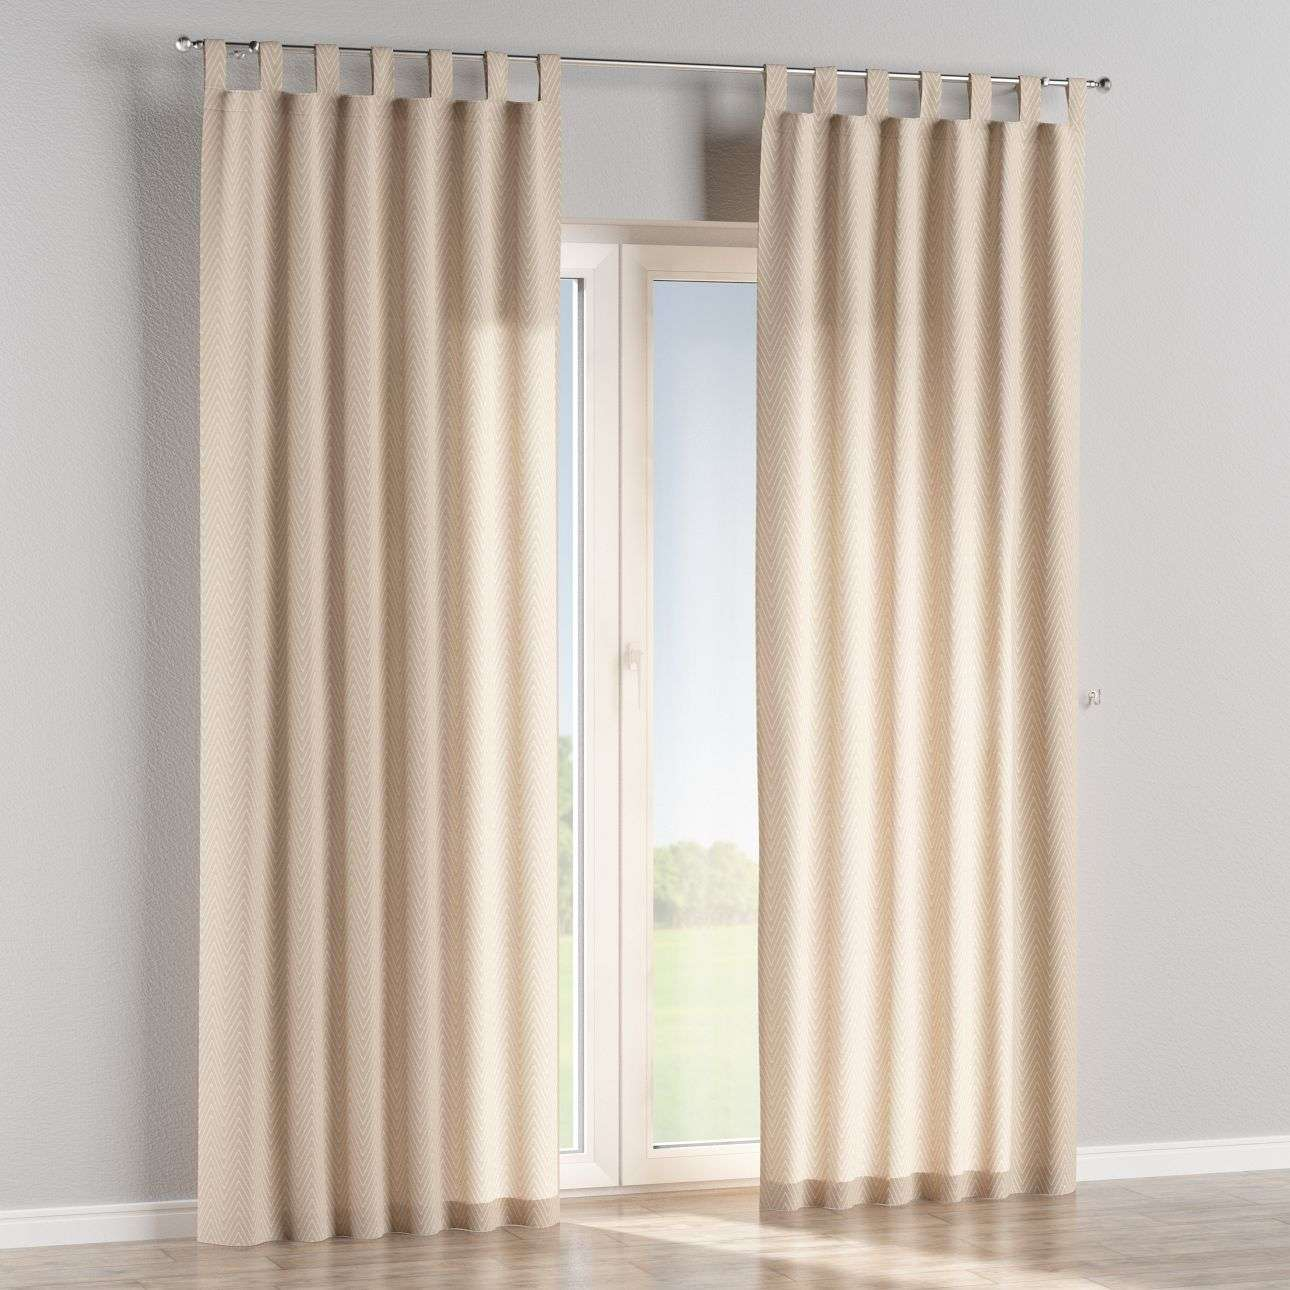 Tab top curtains in collection Brooklyn, fabric: 137-91